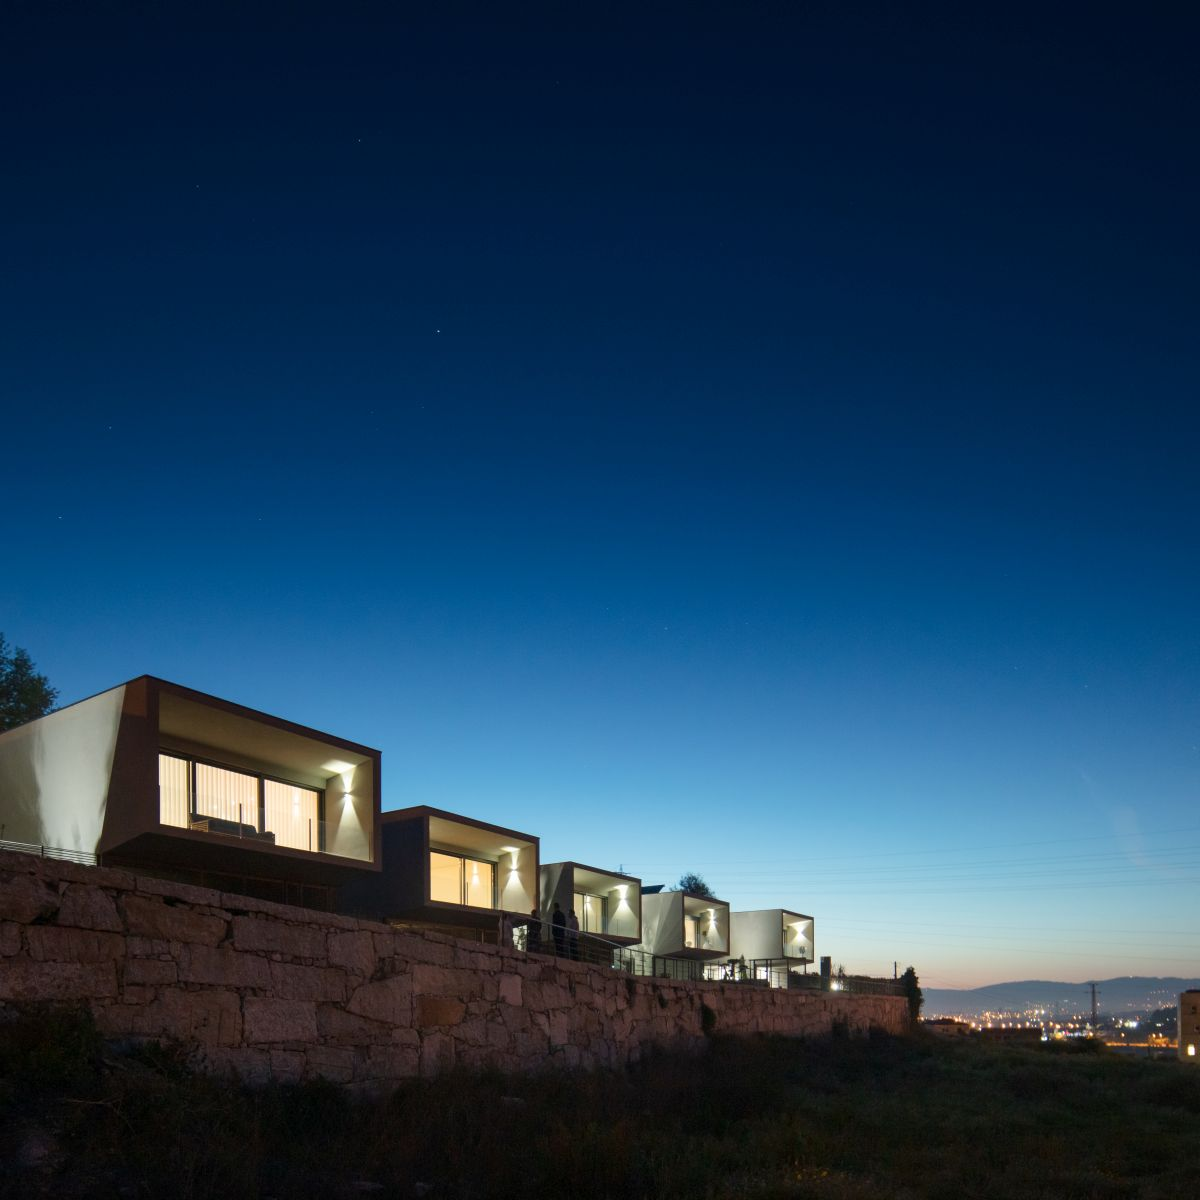 The development is framed by a stone wall which stretches all around it